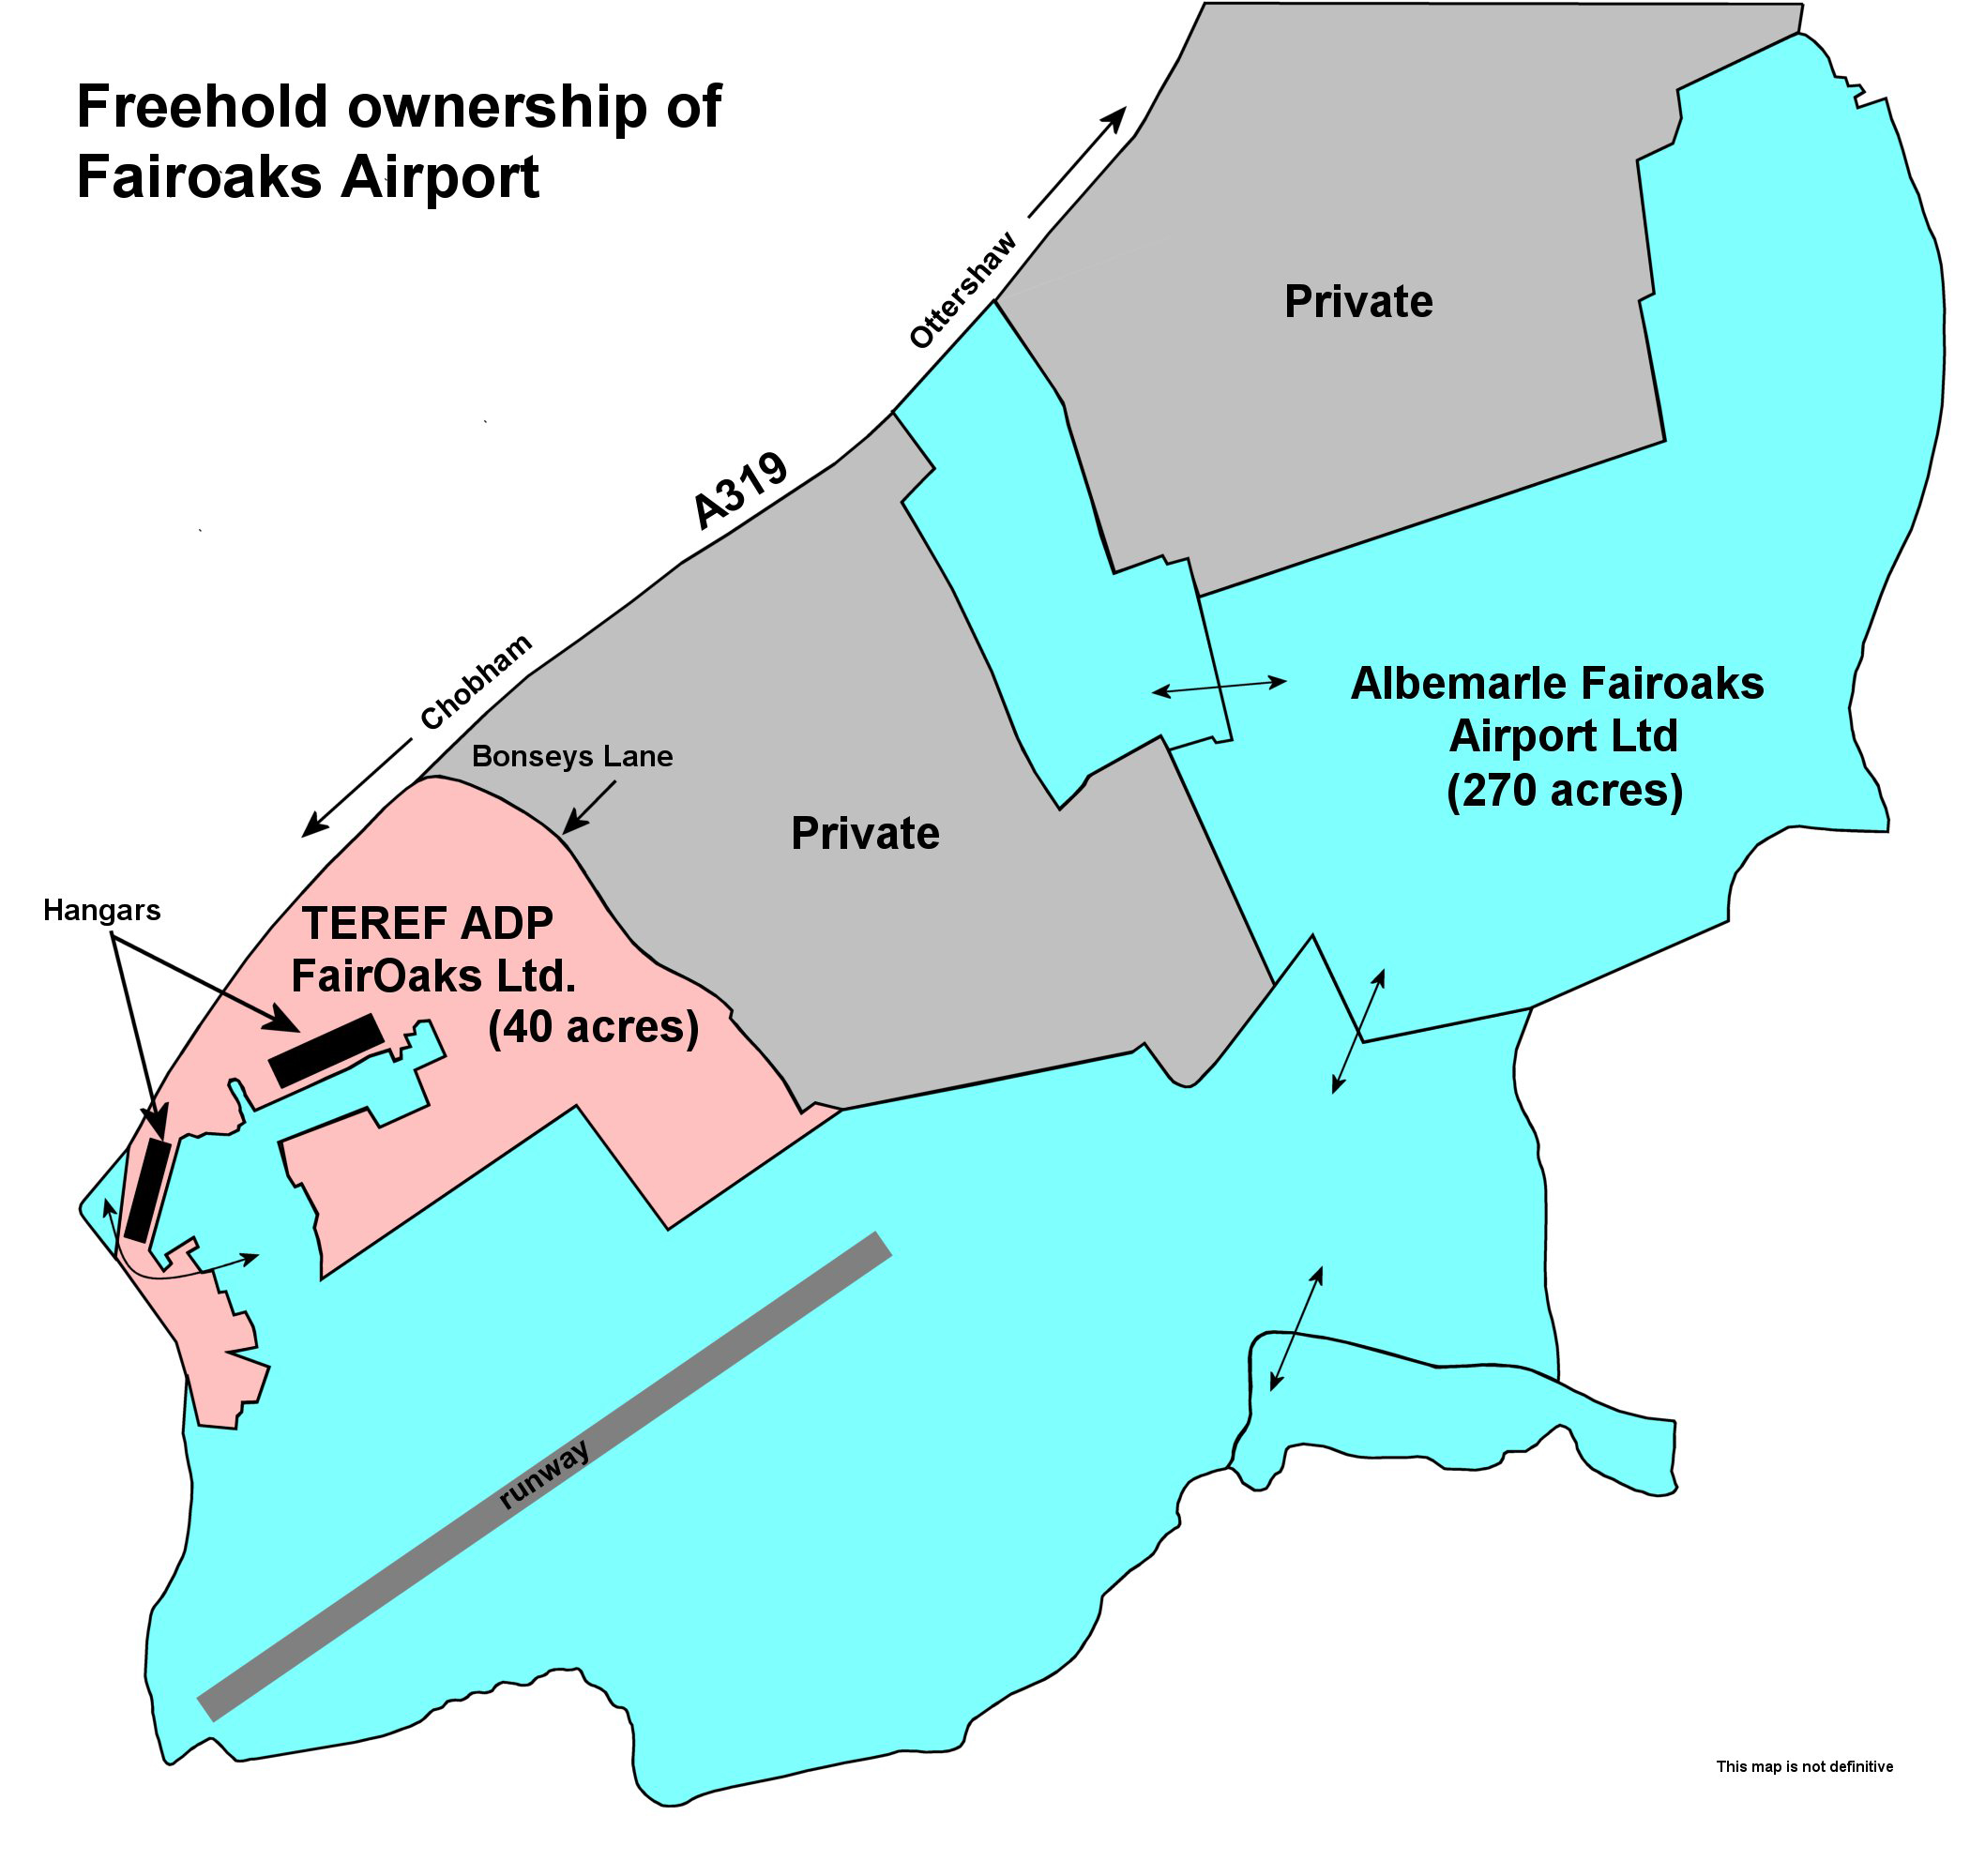 Freehold Ownership Map 23mar17